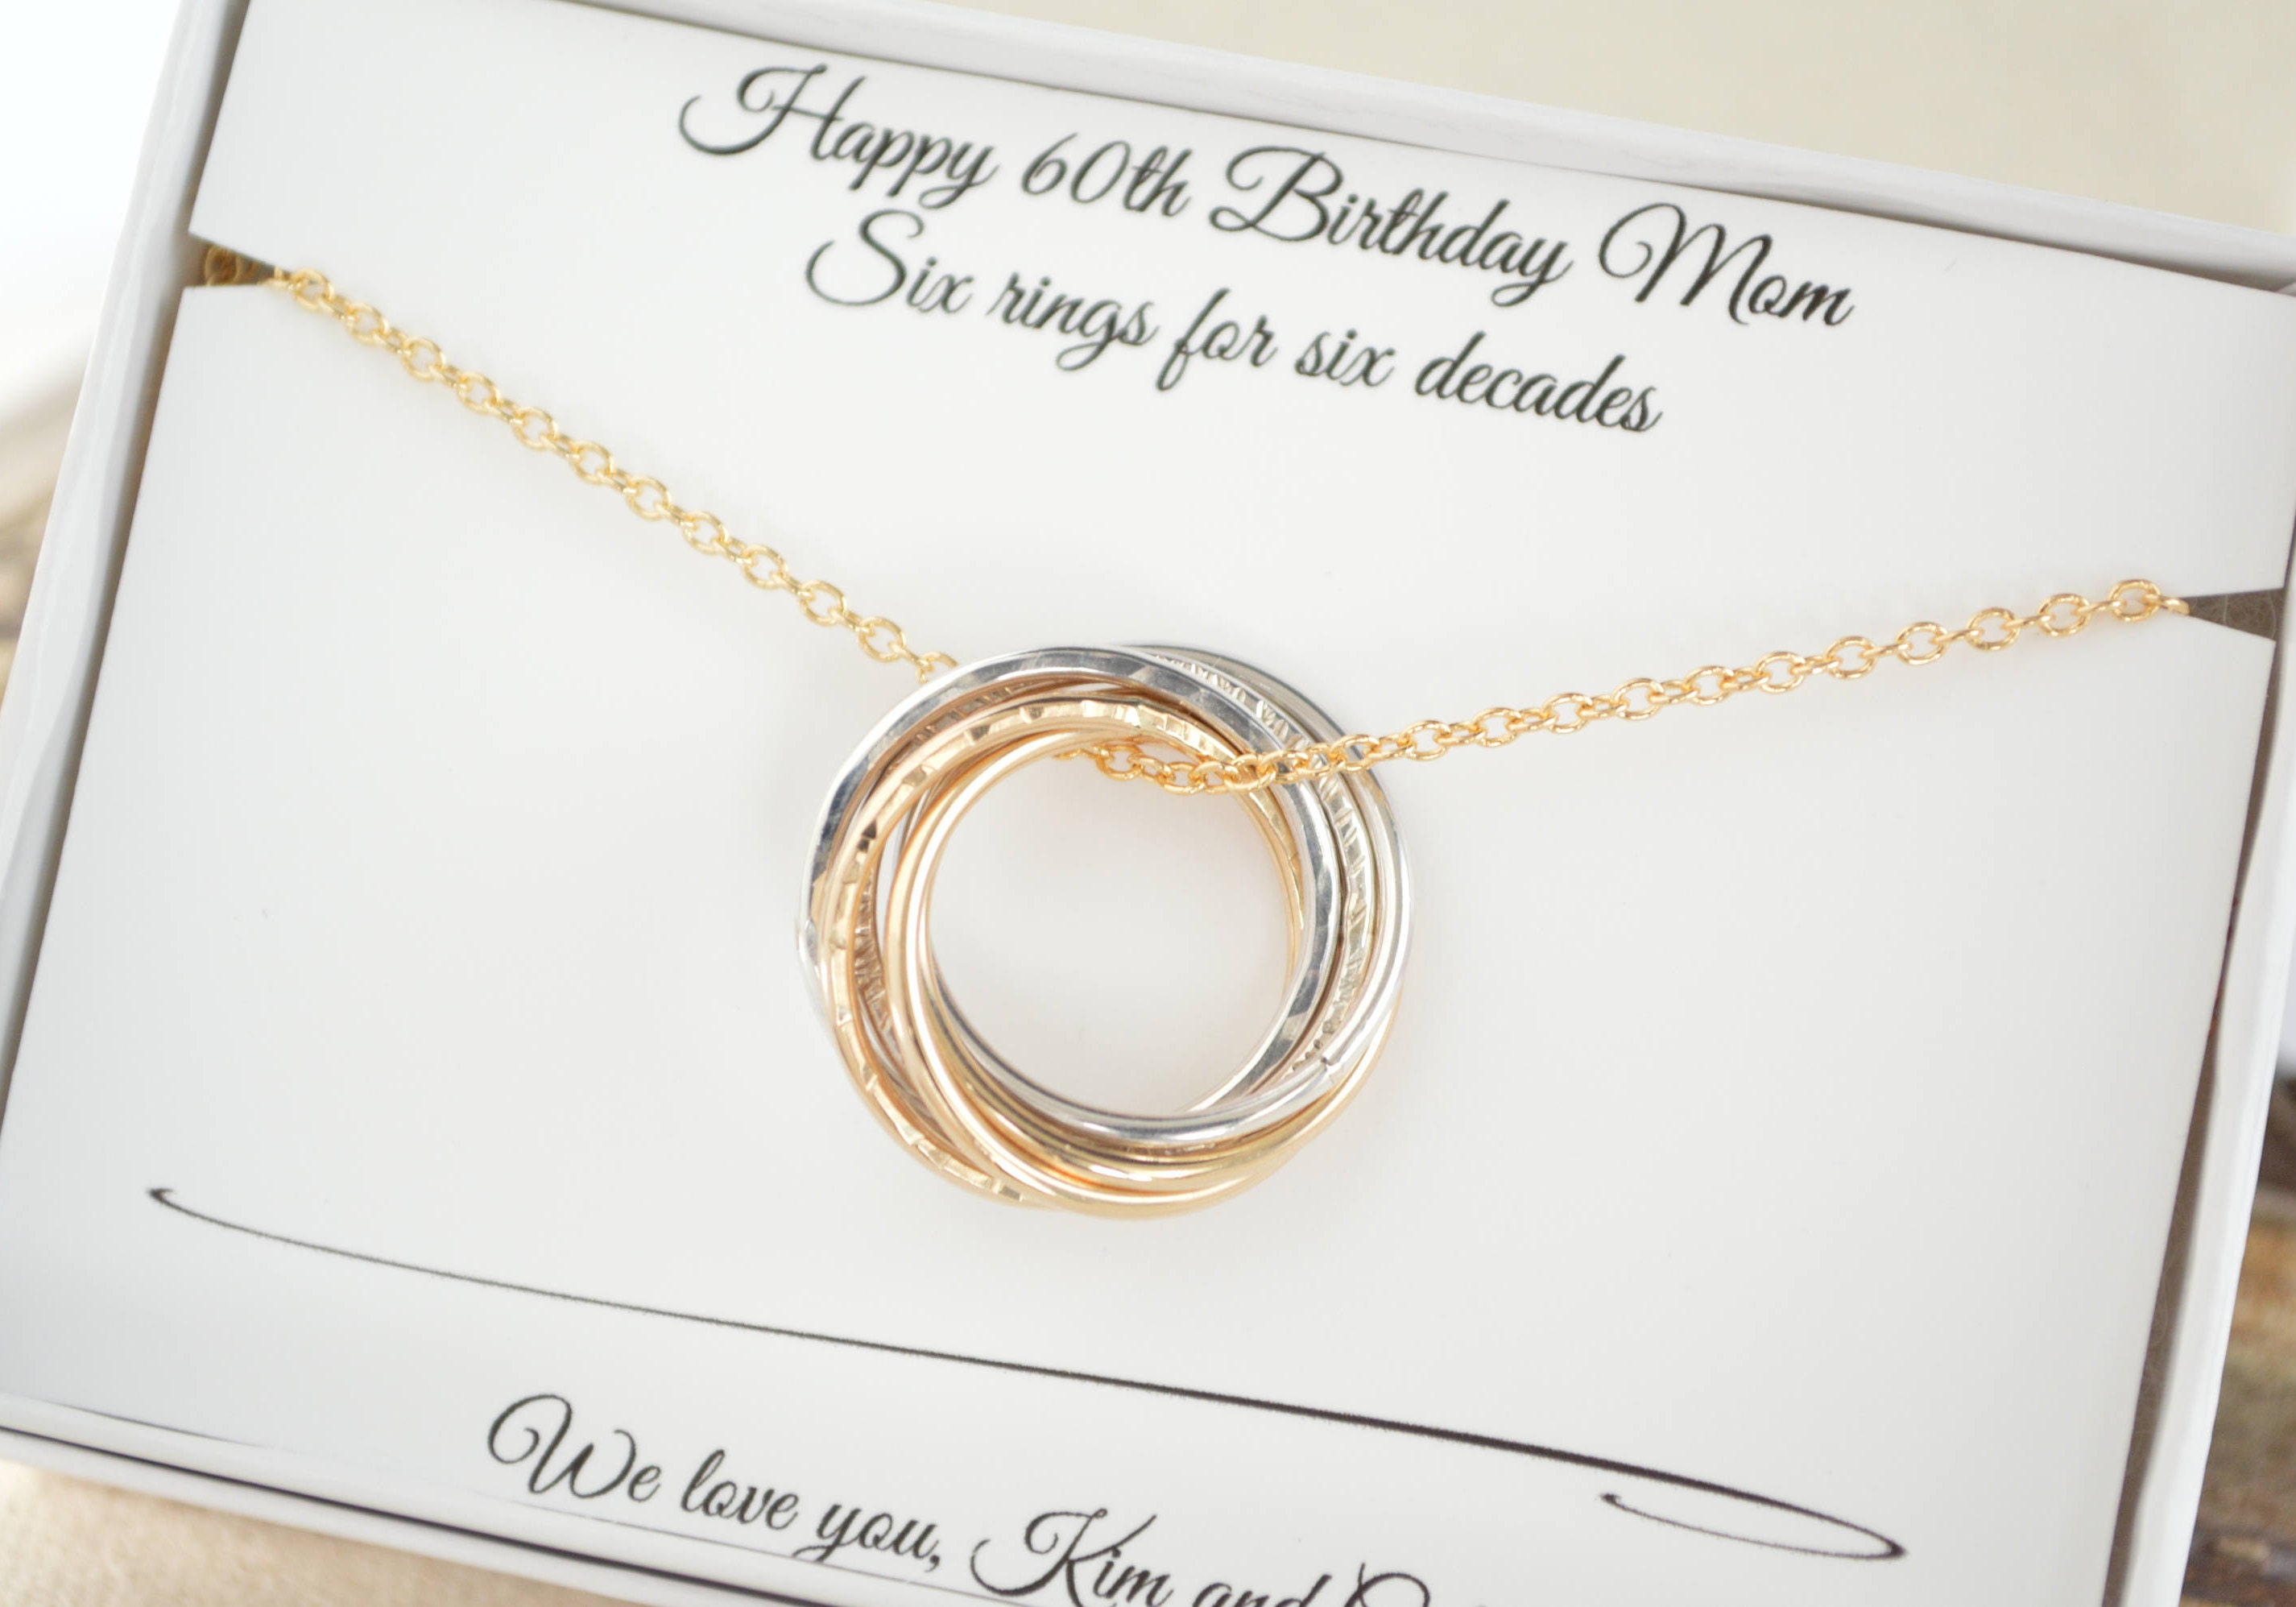 60th Birthday Gift For Mom 6th Anniversary Gif Her 6 Rings Necklace Women Gifts Mother